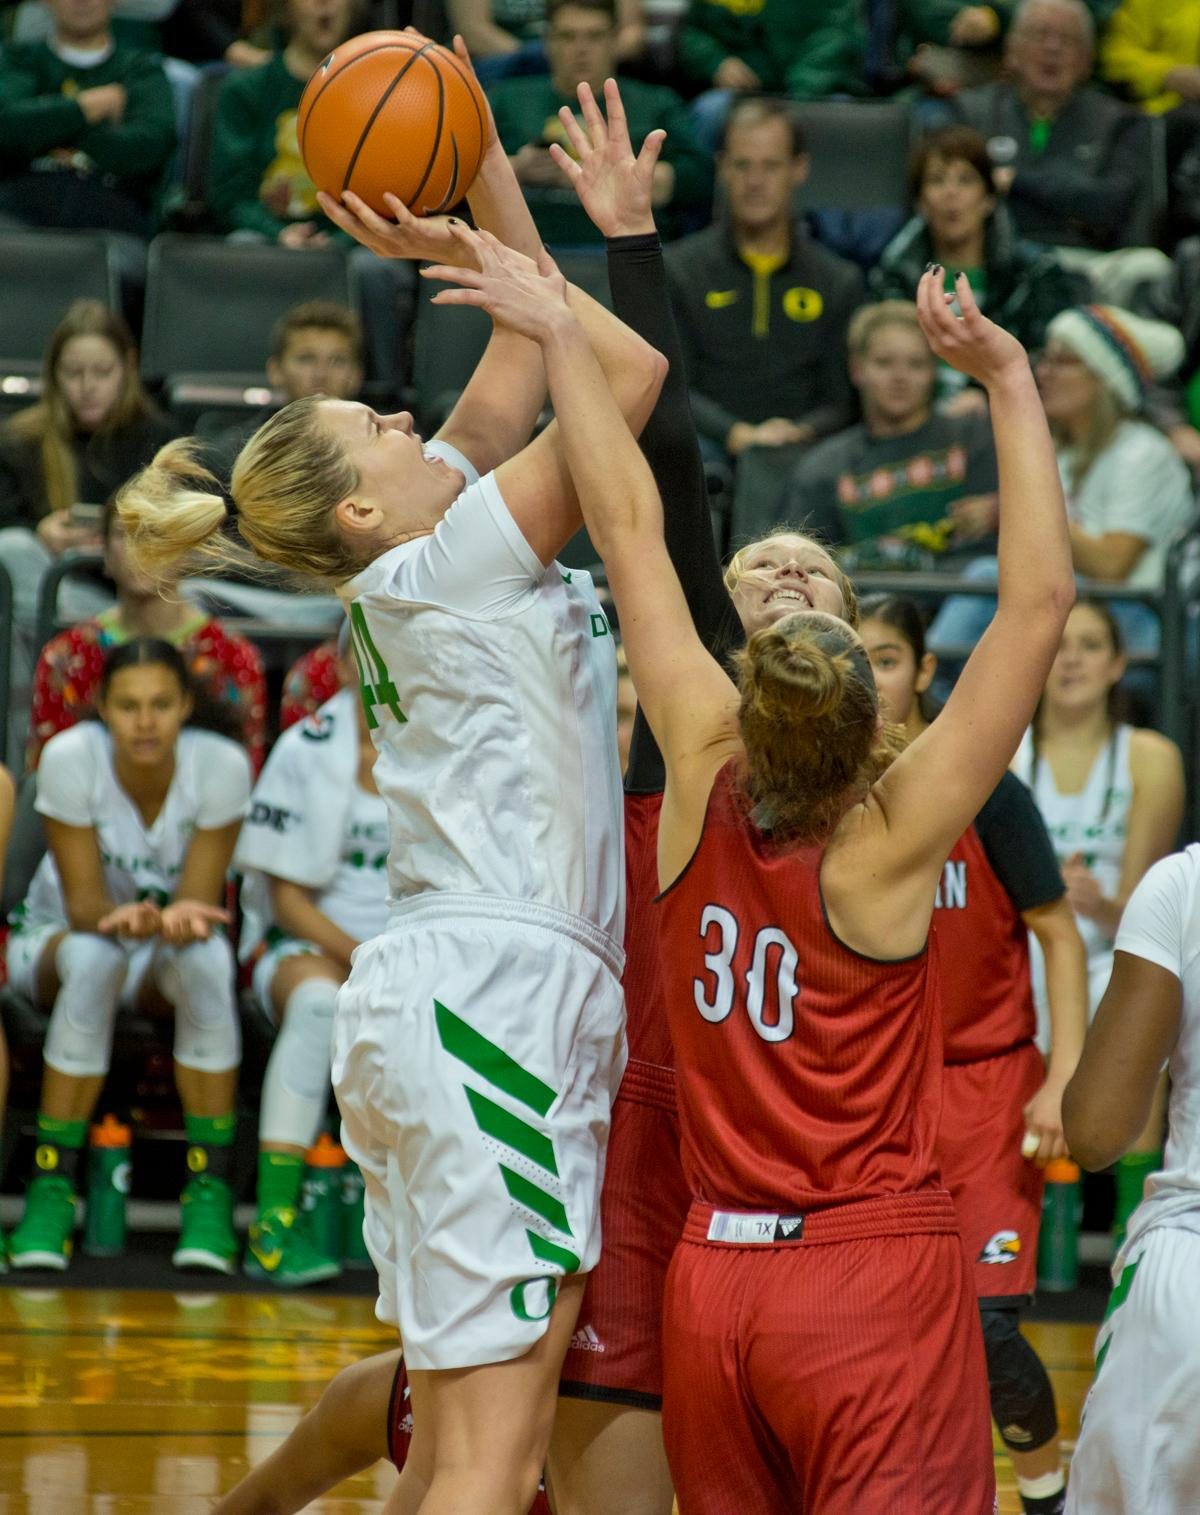 Oregon Ducks Mallory McGwire (#44) draws a foul from Southern Utah Thunderbirds Carlie Jones (#30). The University of Oregon Ducks women basketball team defeated the Southern Utah Thunderbirds 98-38 in Matthew Knight Arena Saturday afternoon. The Ducks had four players in double-digits: Ruthy Hebard with 13; Mallory McGwire with 10; Lexi Bando with 17 which included four three-pointers; and Sabrina Ionescu with 16 points. The Ducks overwhelmed the Thunderbirds, shooting 50% in field goals to South Utah's 26.8%, 53.8% in three-pointers to 12.5%, and 85.7% in free throws to 50%. The Ducks, with an overall record of 8-1, and coming into this game ranked 9th, will play their next home game against Ole Miss on December 17. Photo by Dan Morrison, Oregon News Lab